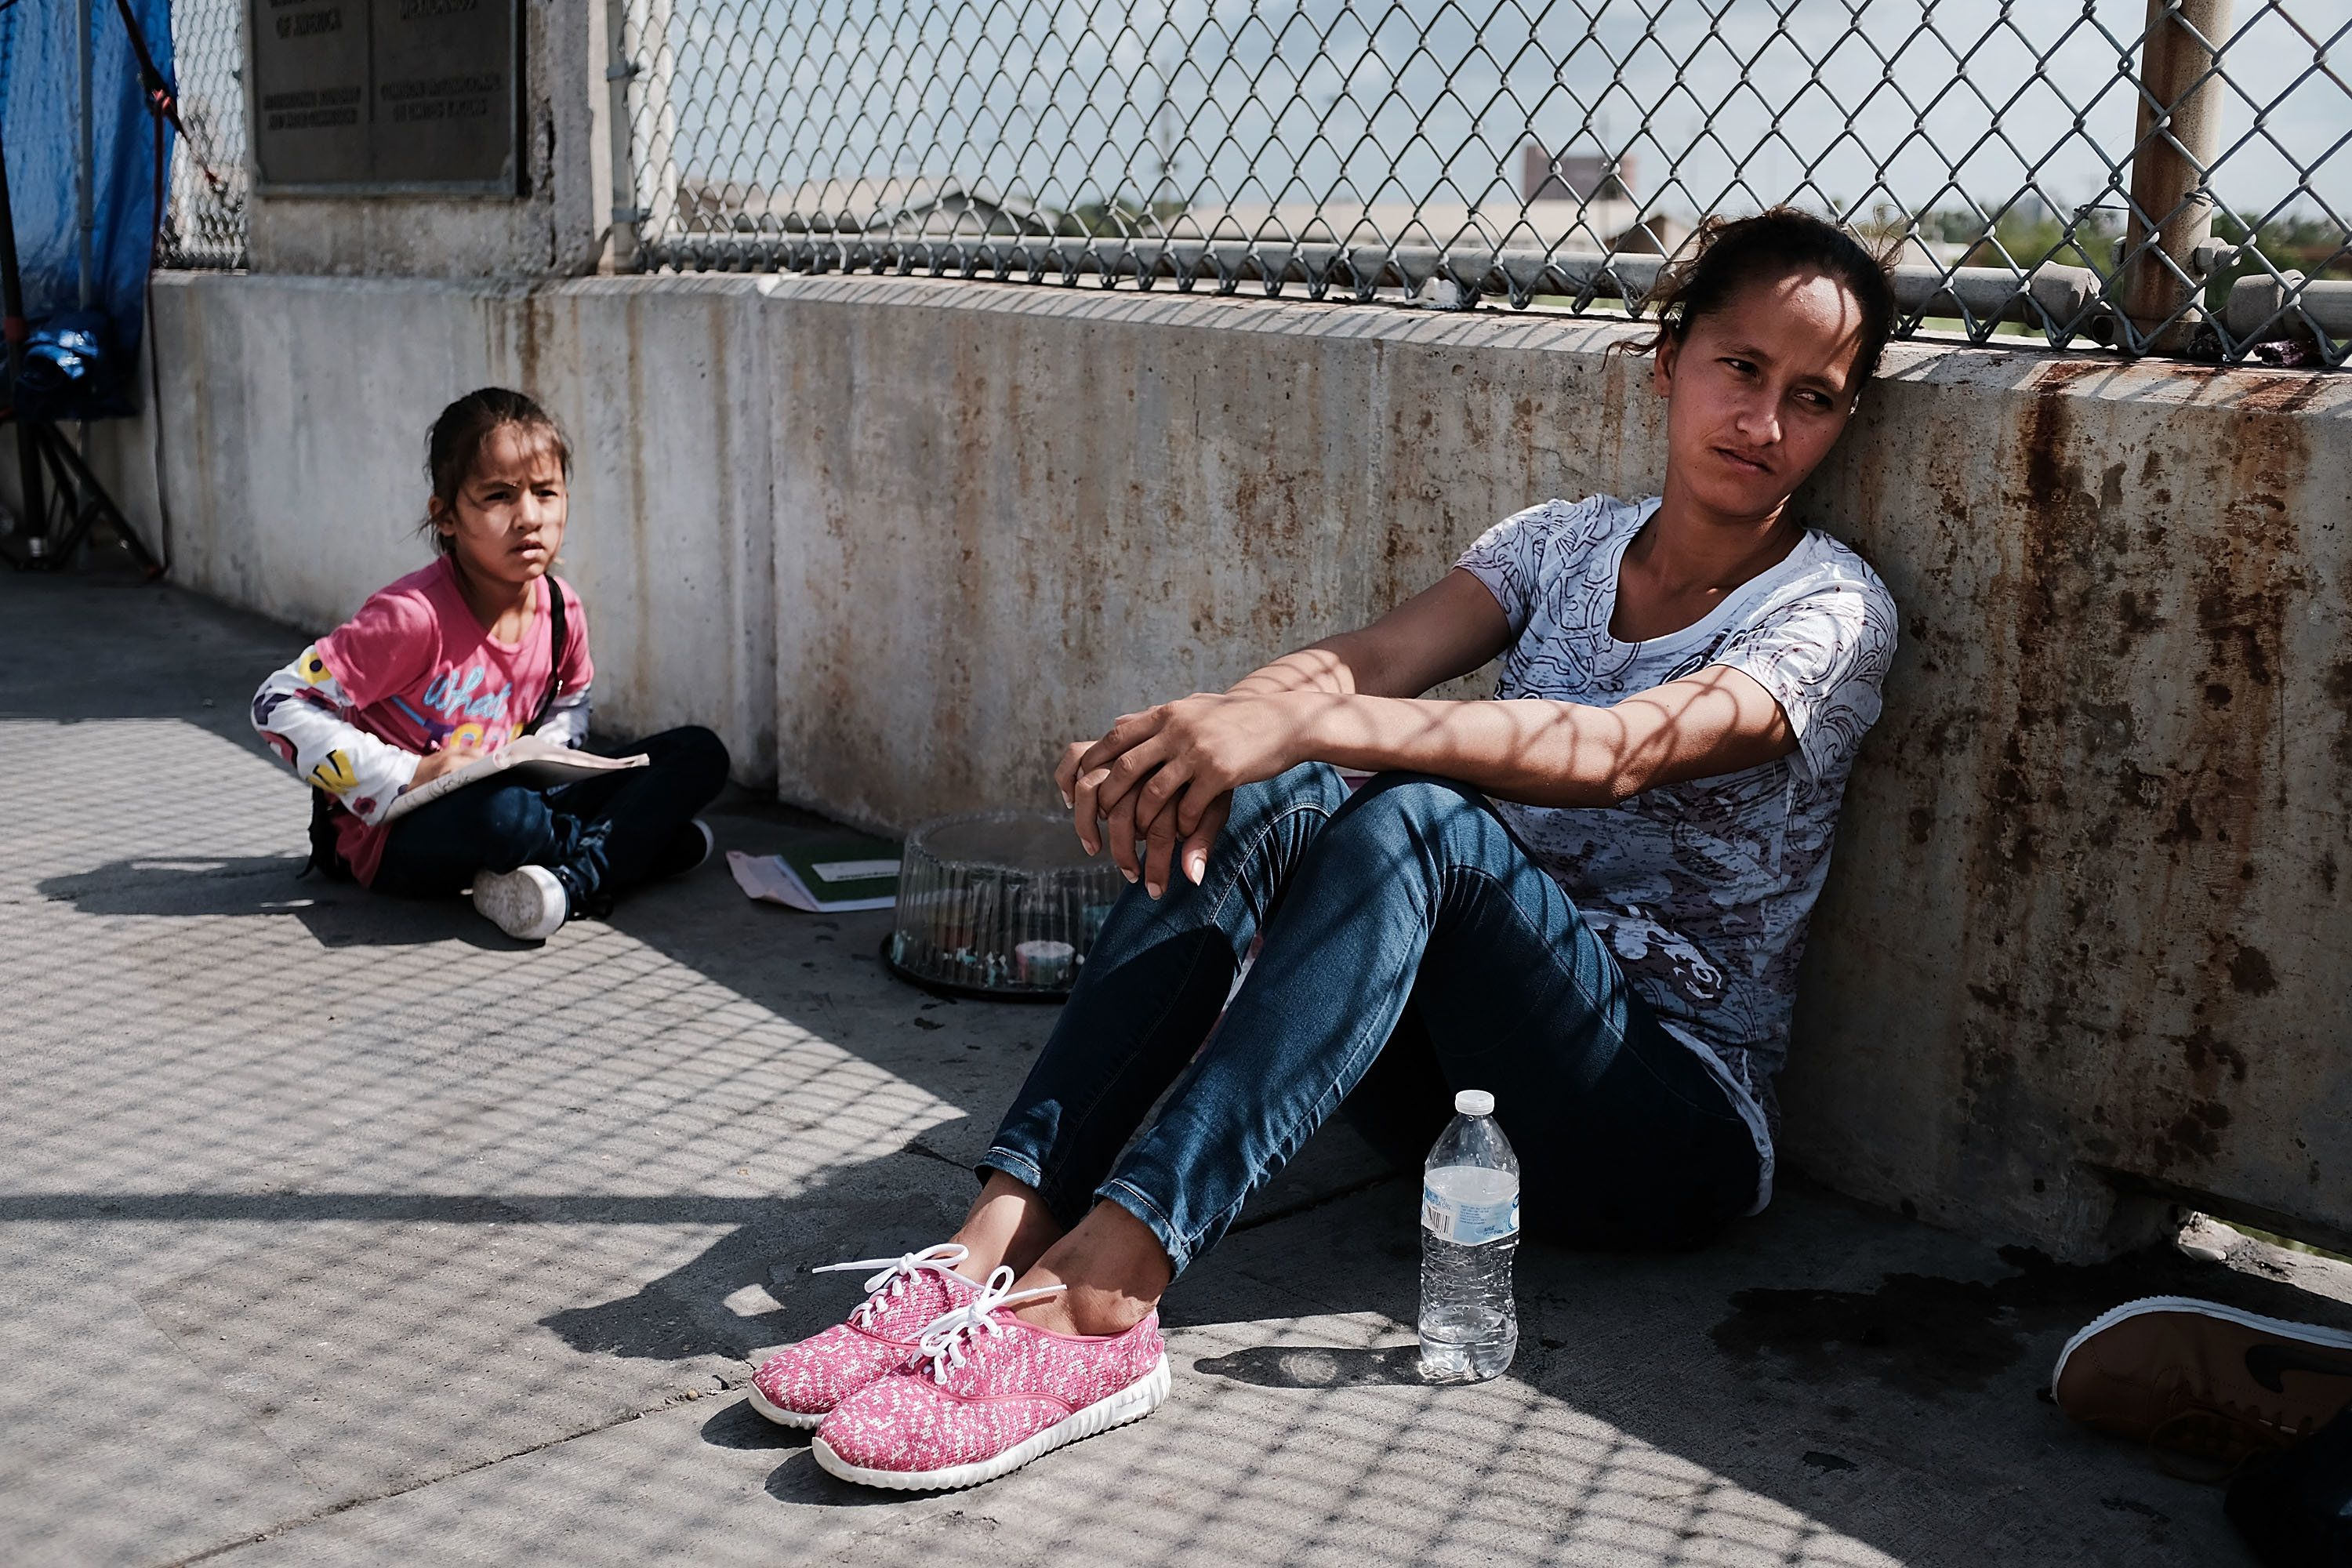 BROWNSVILLE, TX - JUNE 25:  A Honduran woman, fleeing poverty and violence in her home country, waits along the border bridge with her family after being denied entry into the U.S. from Mexico on June 25, 2018 in Brownsville, Texas. Immigration has once again been put in the spotlight as Democrats and Republicans spar over the detention of children and families seeking asylum at the border. Before President Donald Trump signed an executive order last week that halts the practice of separating families who are seeking asylum, more than 2,300 immigrant children had been separated from their parents in the zero-tolerance policy for border crossers.  (Photo by Spencer Platt/Getty Images)